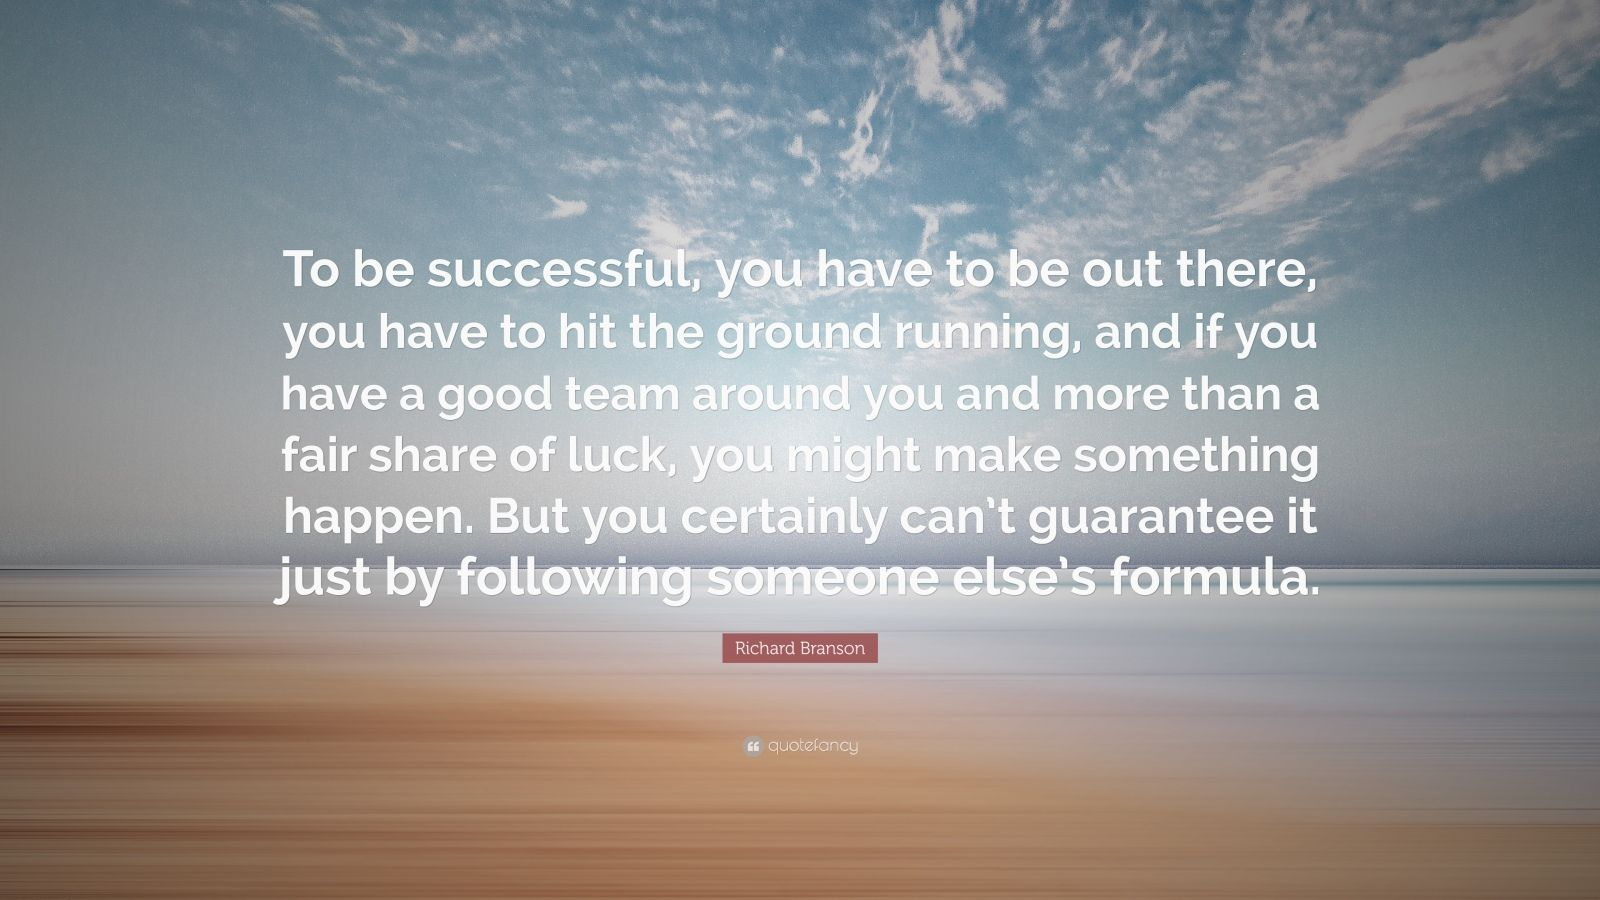 "Richard Branson Quote: ""To be successful, you have to be out there, you have to hit the ground running, and if you have a good team around you and more than a fair share of luck, you might make something happen. But you certainly can't guarantee it just by following someone else's formula."""